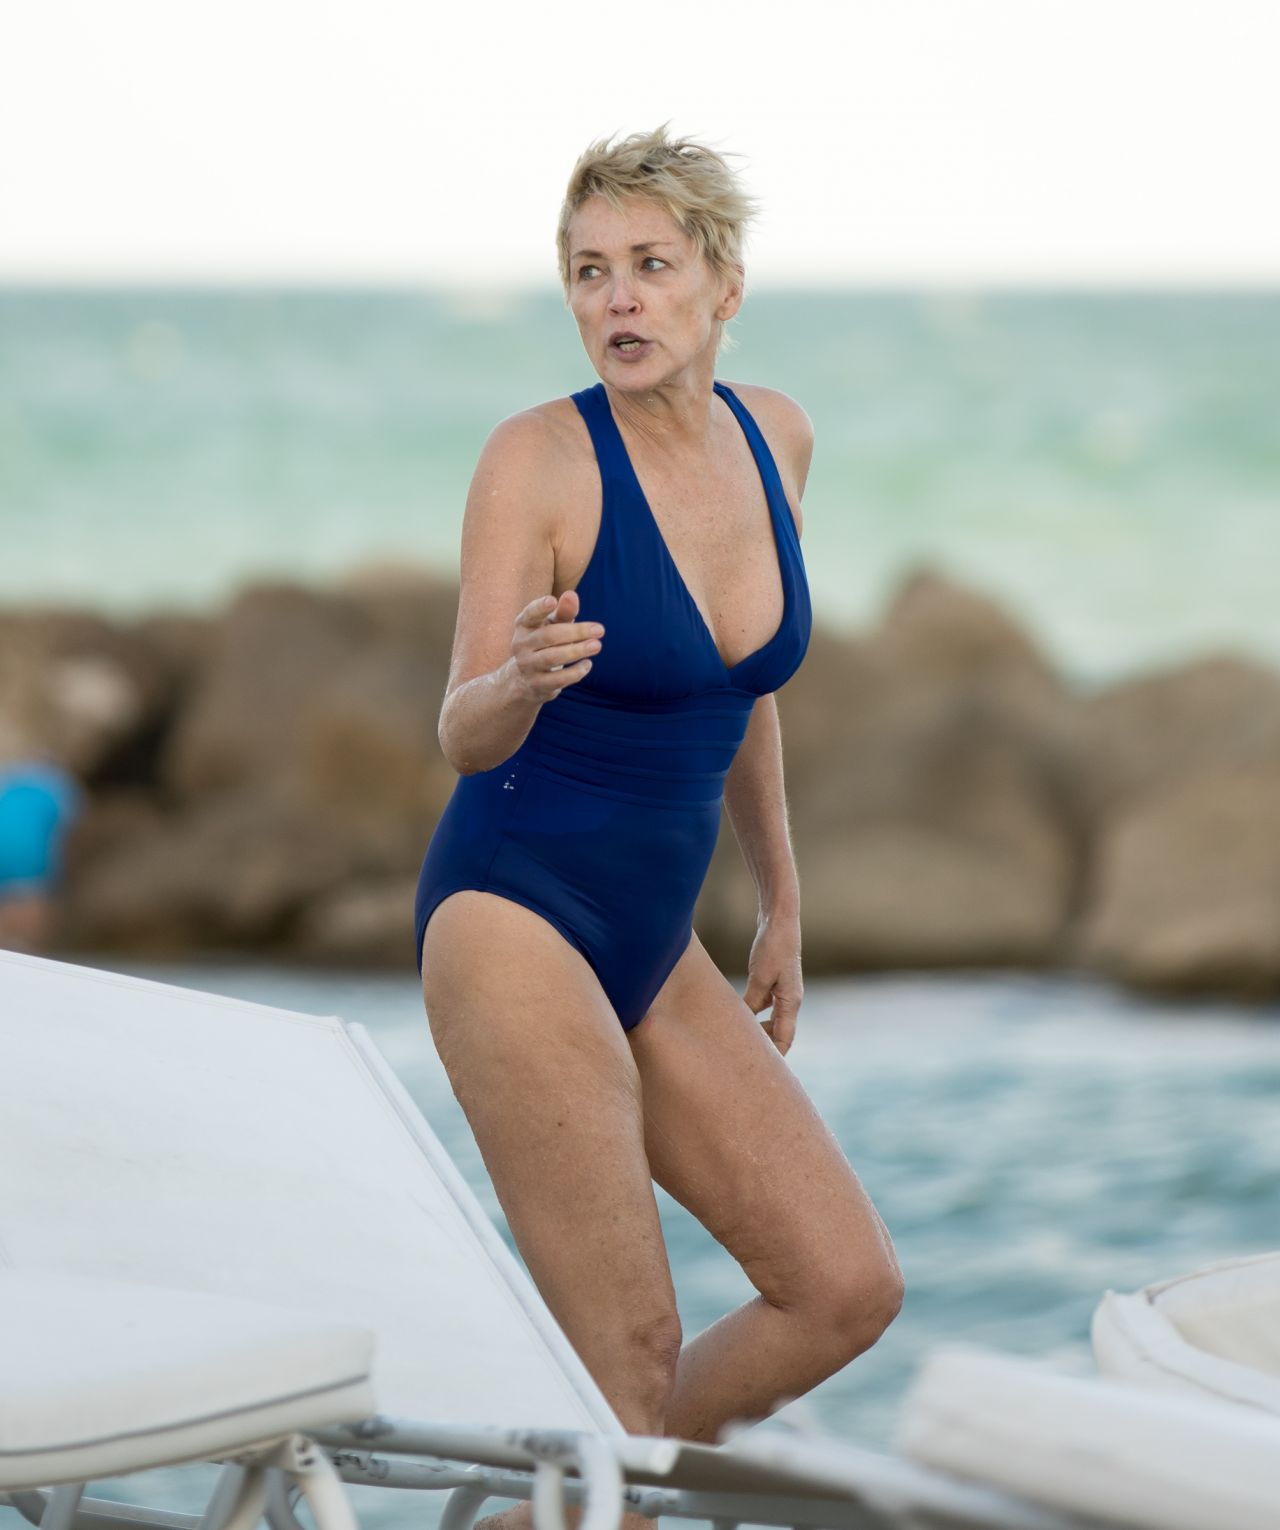 Sharon Stone in Bikini Top with her boyfriend at the beach in Miami Pic 3 of 35